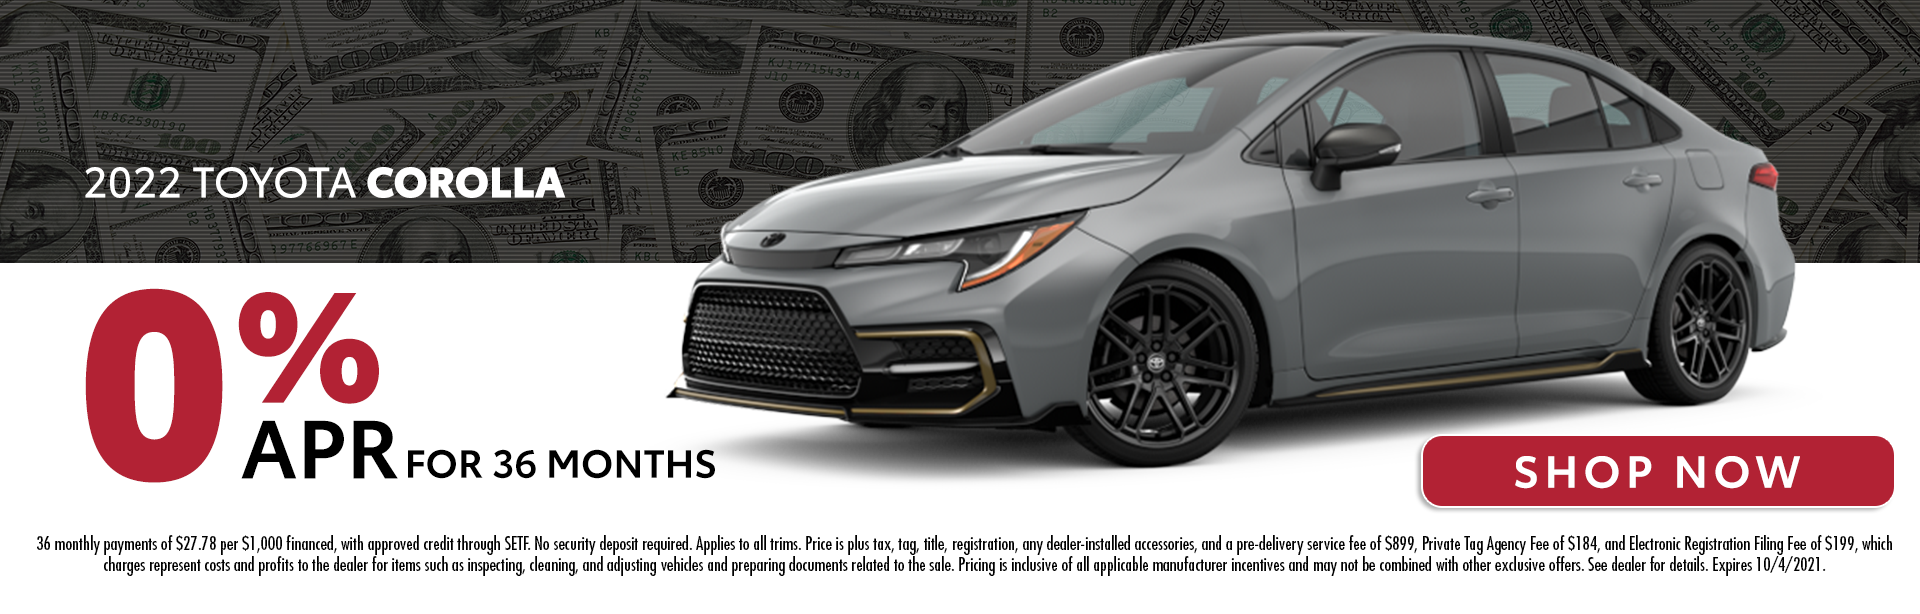 2022 Toyota Corolla | 0% APR For 36 Months